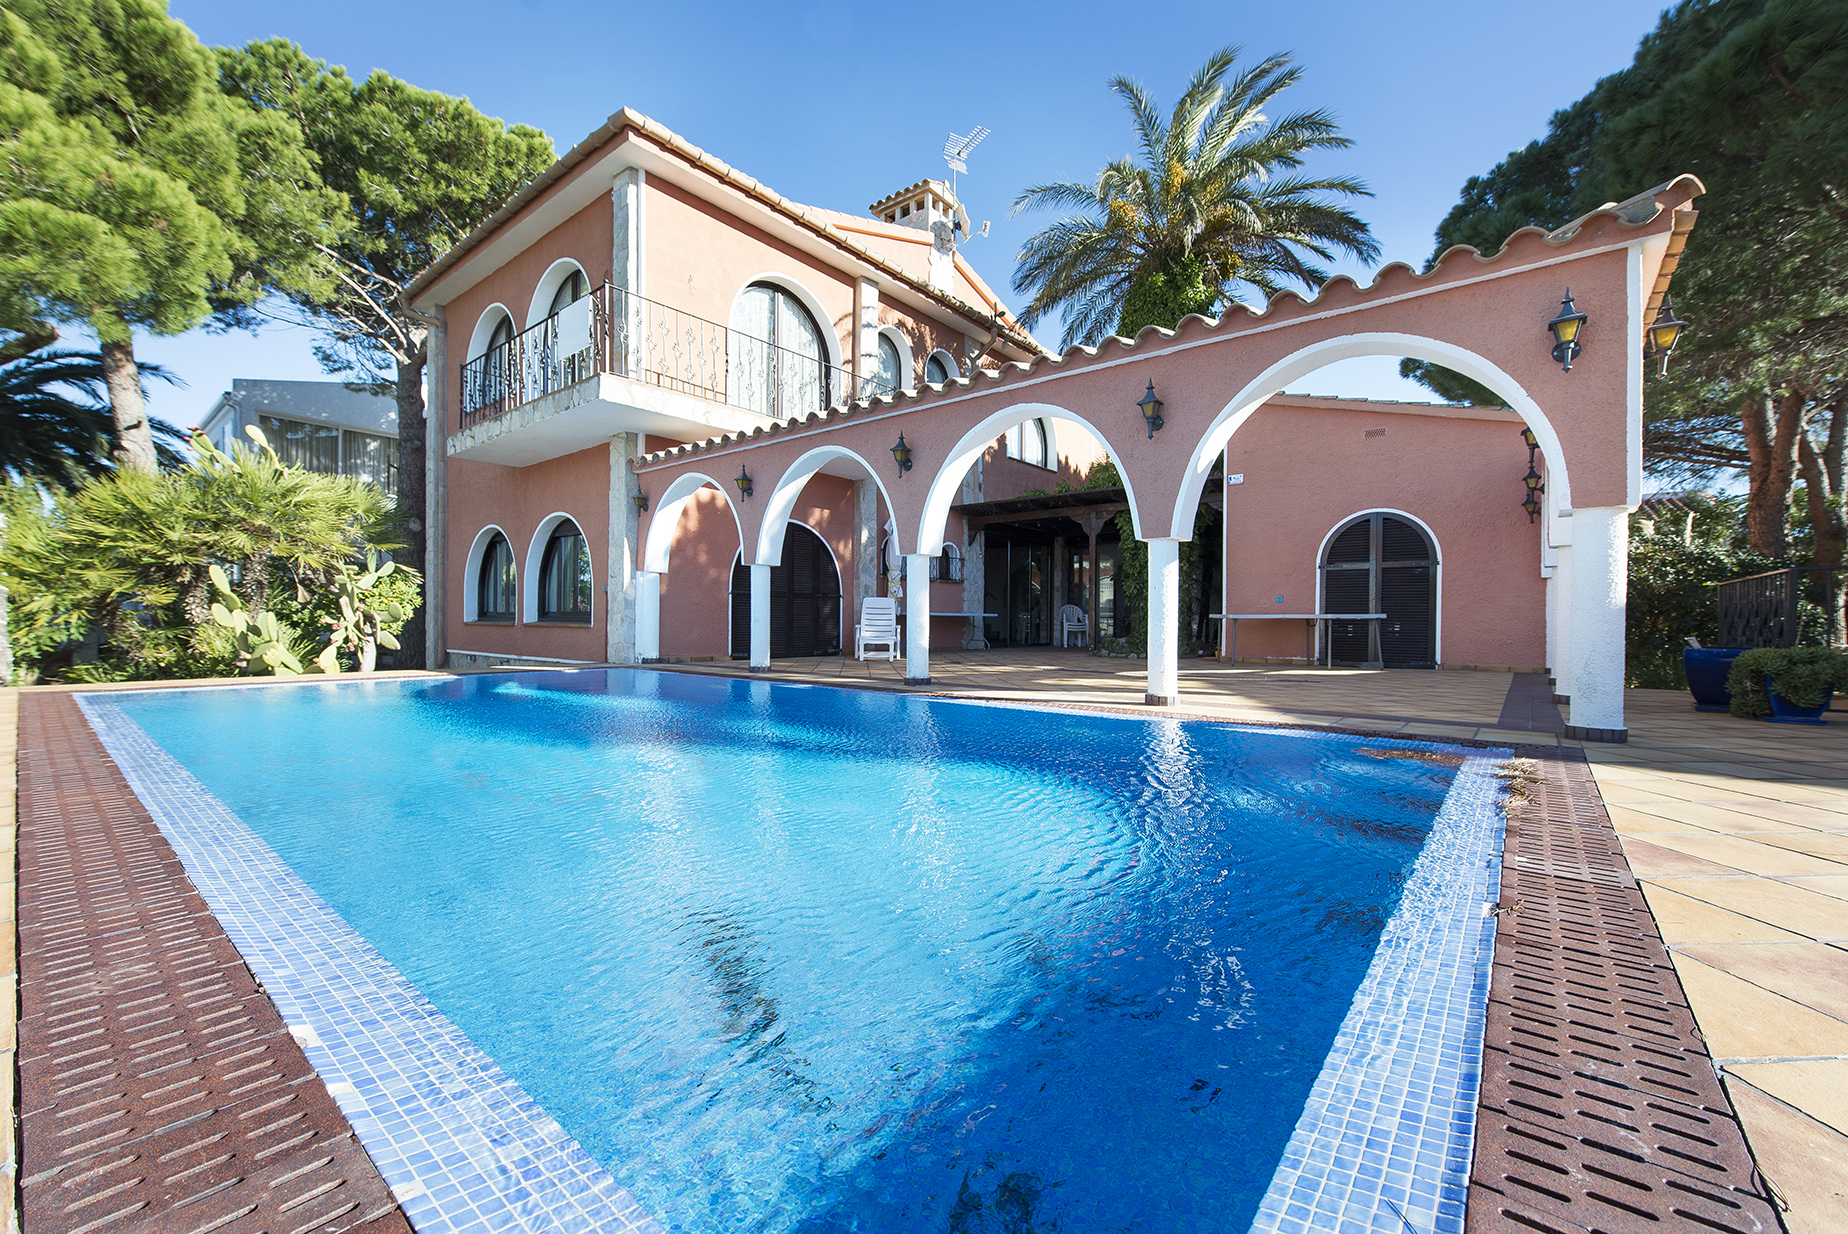 Vivienda unifamiliar por un Venta en Beautiful big house with 30m mooring in Empuriabrava Empuriabrava, Costa Brava, 17487 España